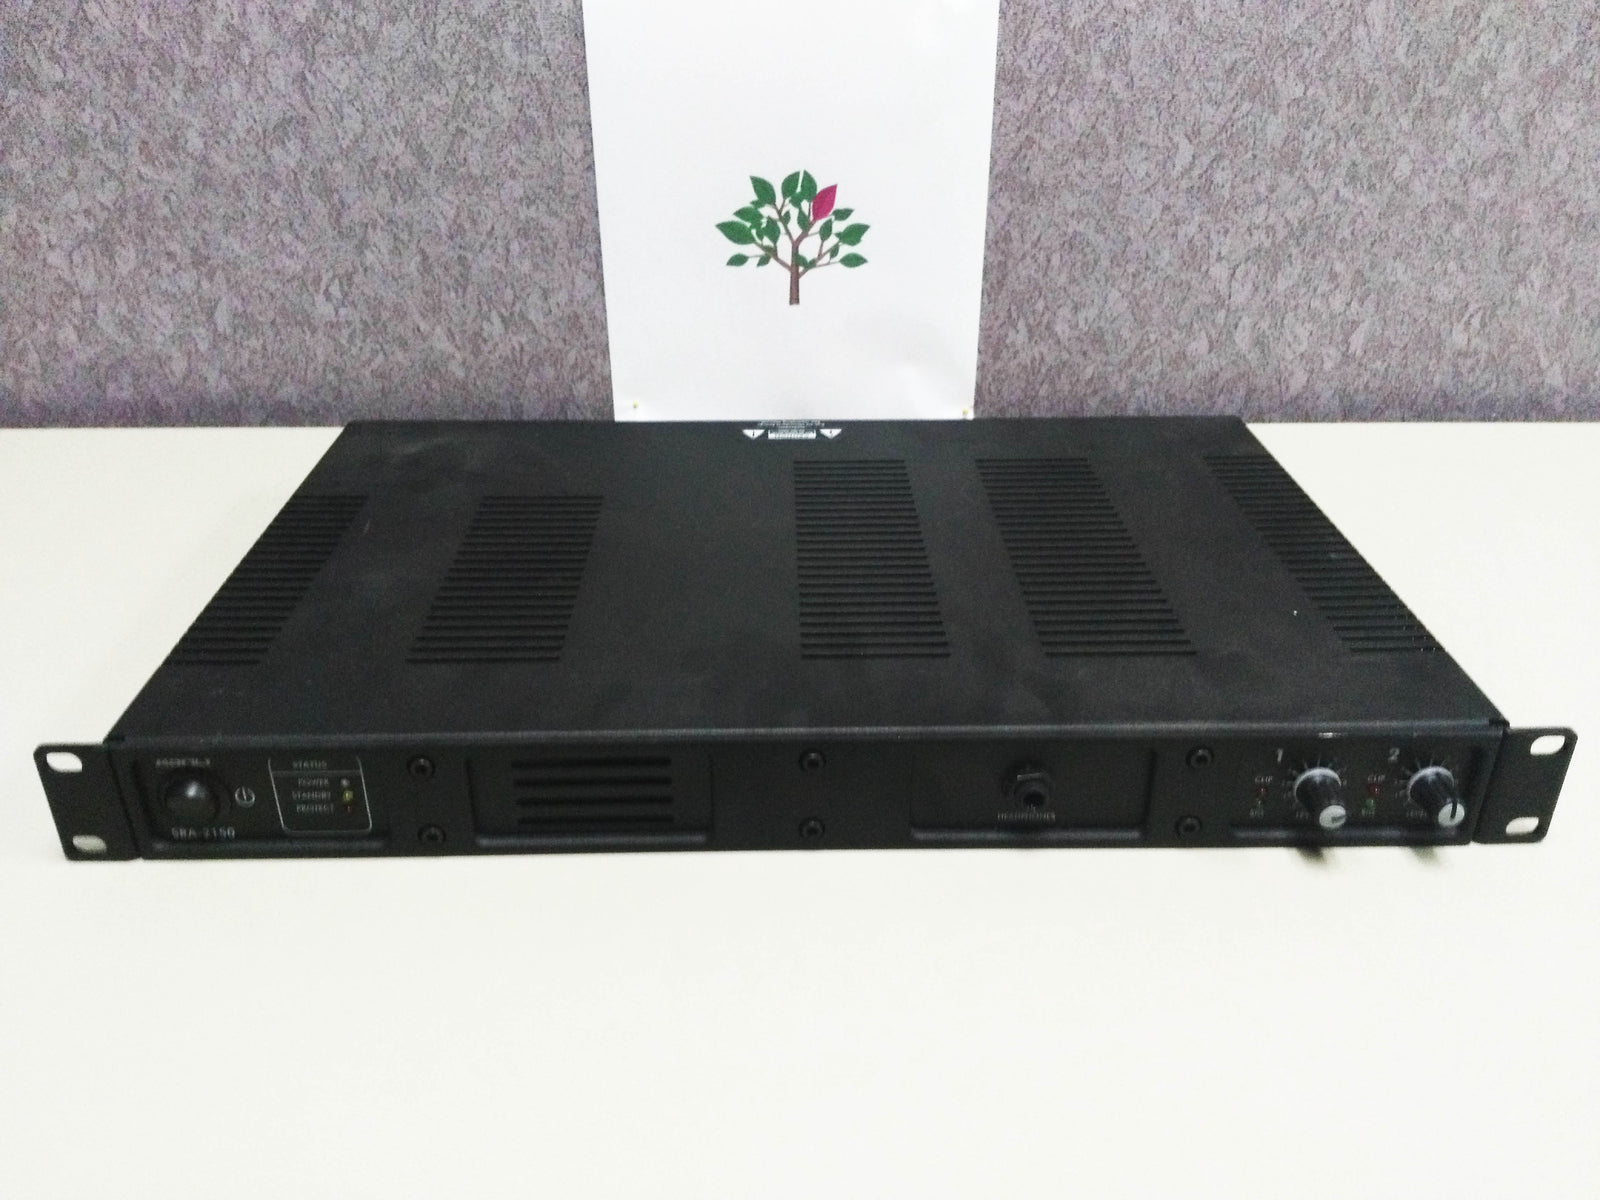 Ashly SRA-2150 Rack Mount Amplifier Two Channel 80 Watt Ch at 8 Ohms 1RU Chassis Class D Output Circuitry (Used)